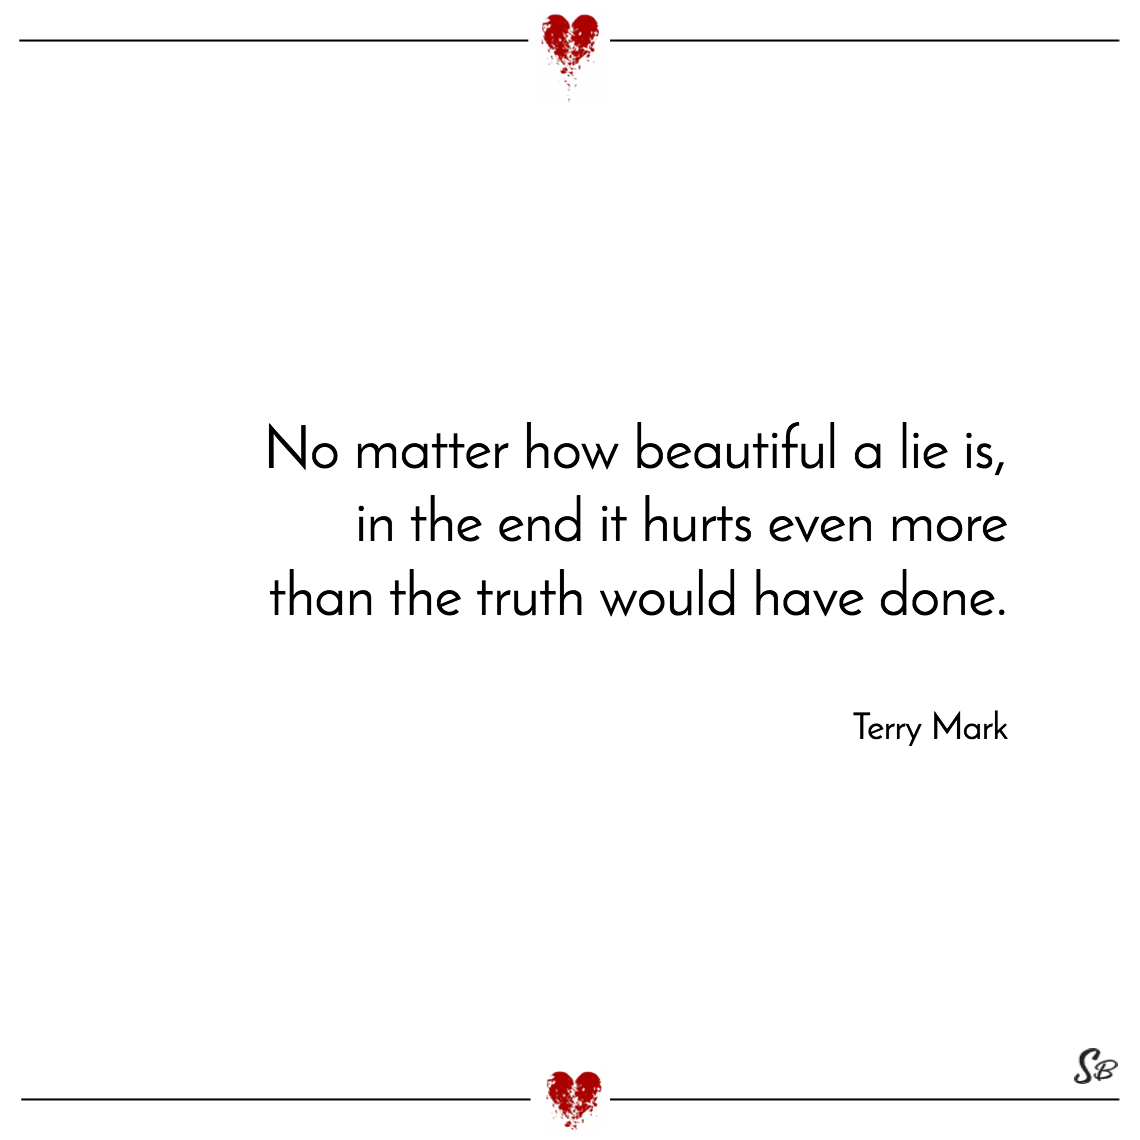 No matter how beautiful a lie is, in the end it hurts even more than the truth would have done. terry mark